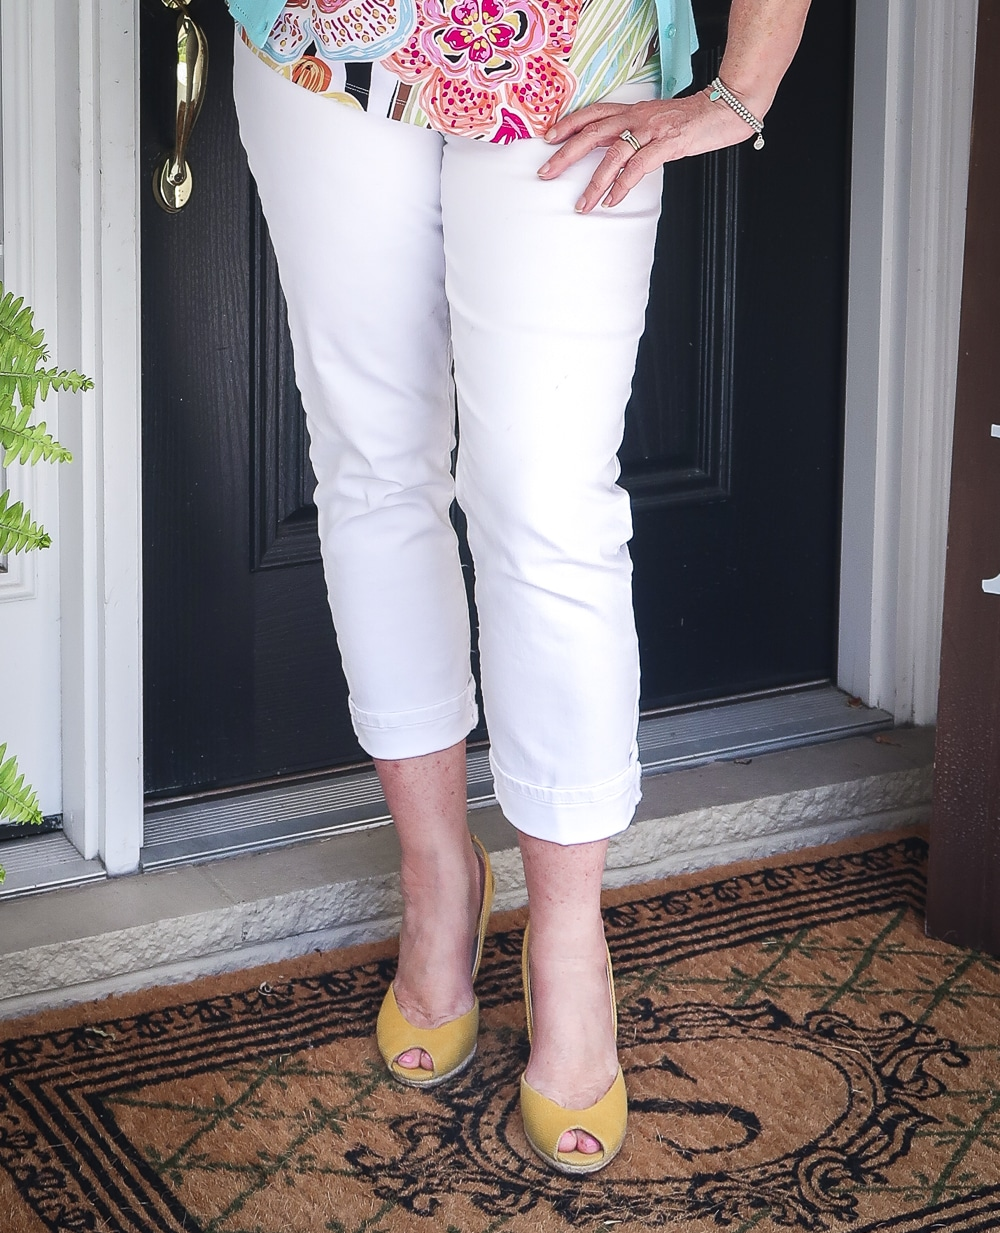 Fashion Blogger 50 Is Not Old is looking summery in white ankle jeans and yellow espadrilles